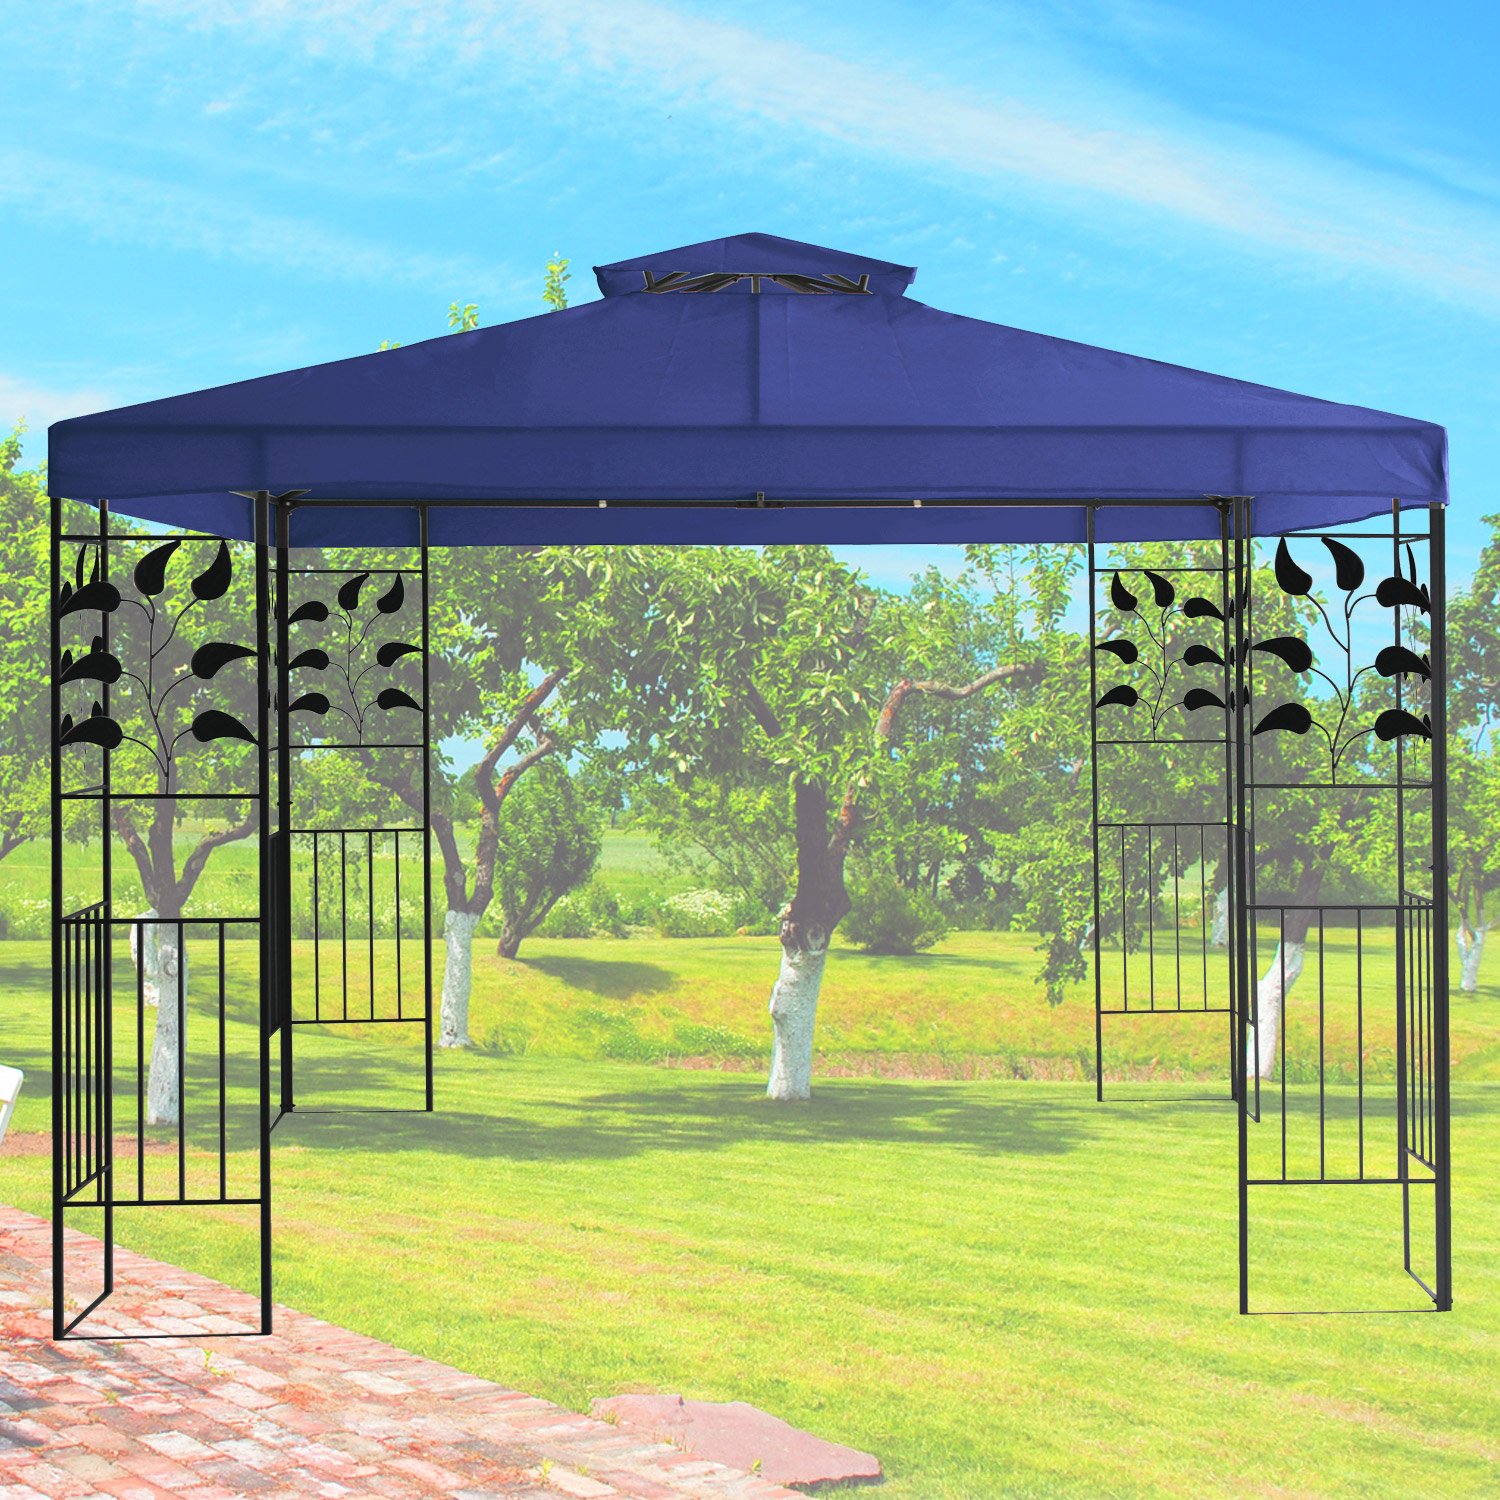 pavillon 3x3m metall gartenpavillon festzelt dach zelt garten wasserfest blau ebay. Black Bedroom Furniture Sets. Home Design Ideas